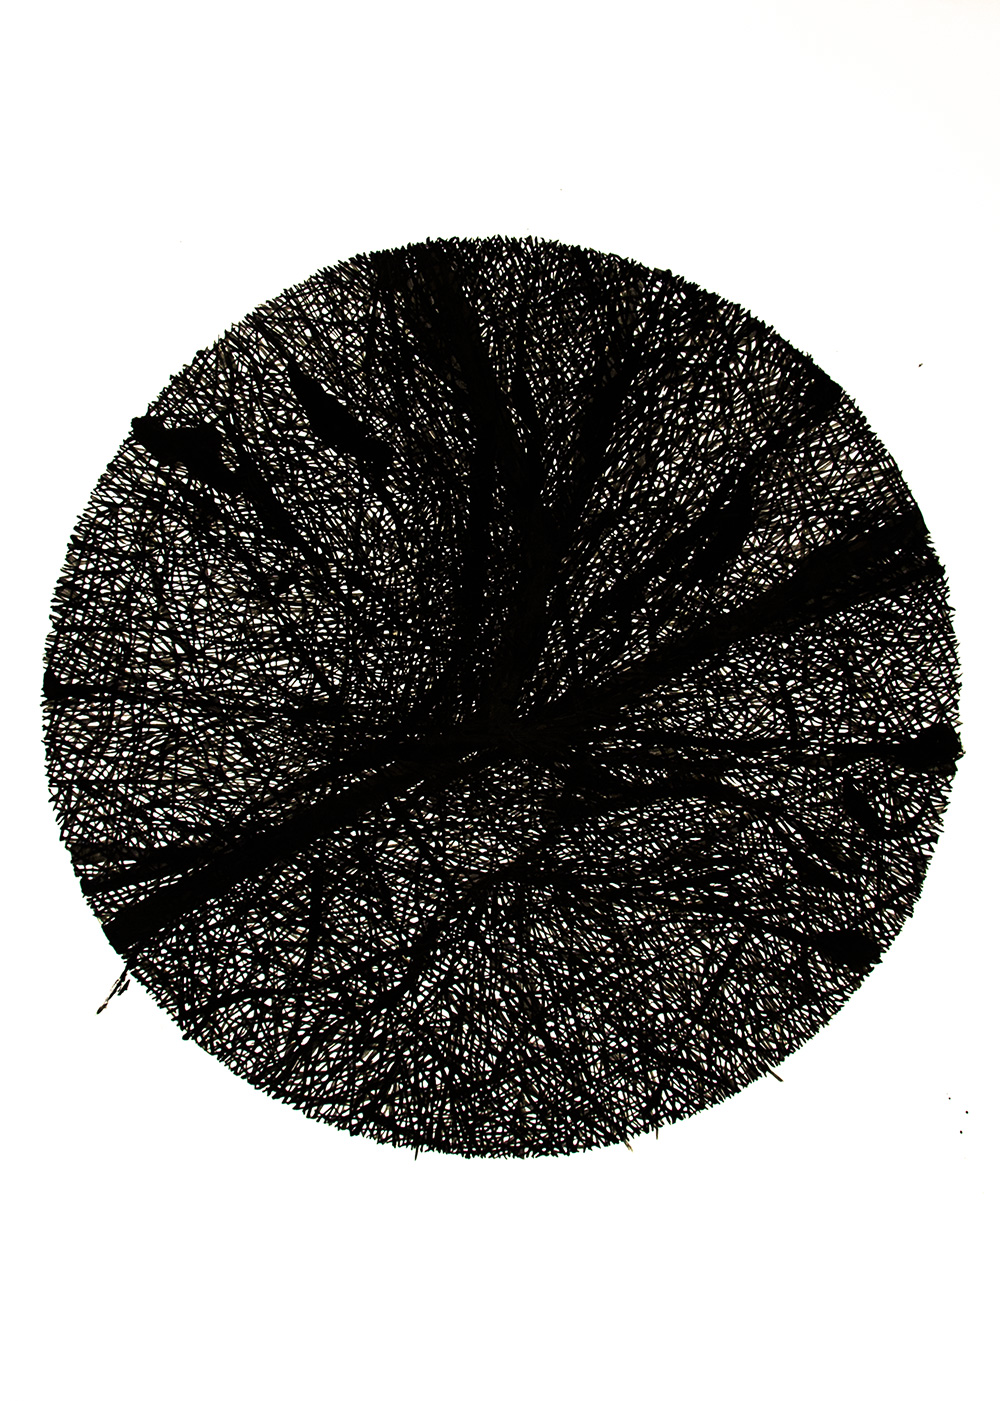 Untitled, 2014, Ink on paper, 75 cm × 55 cm